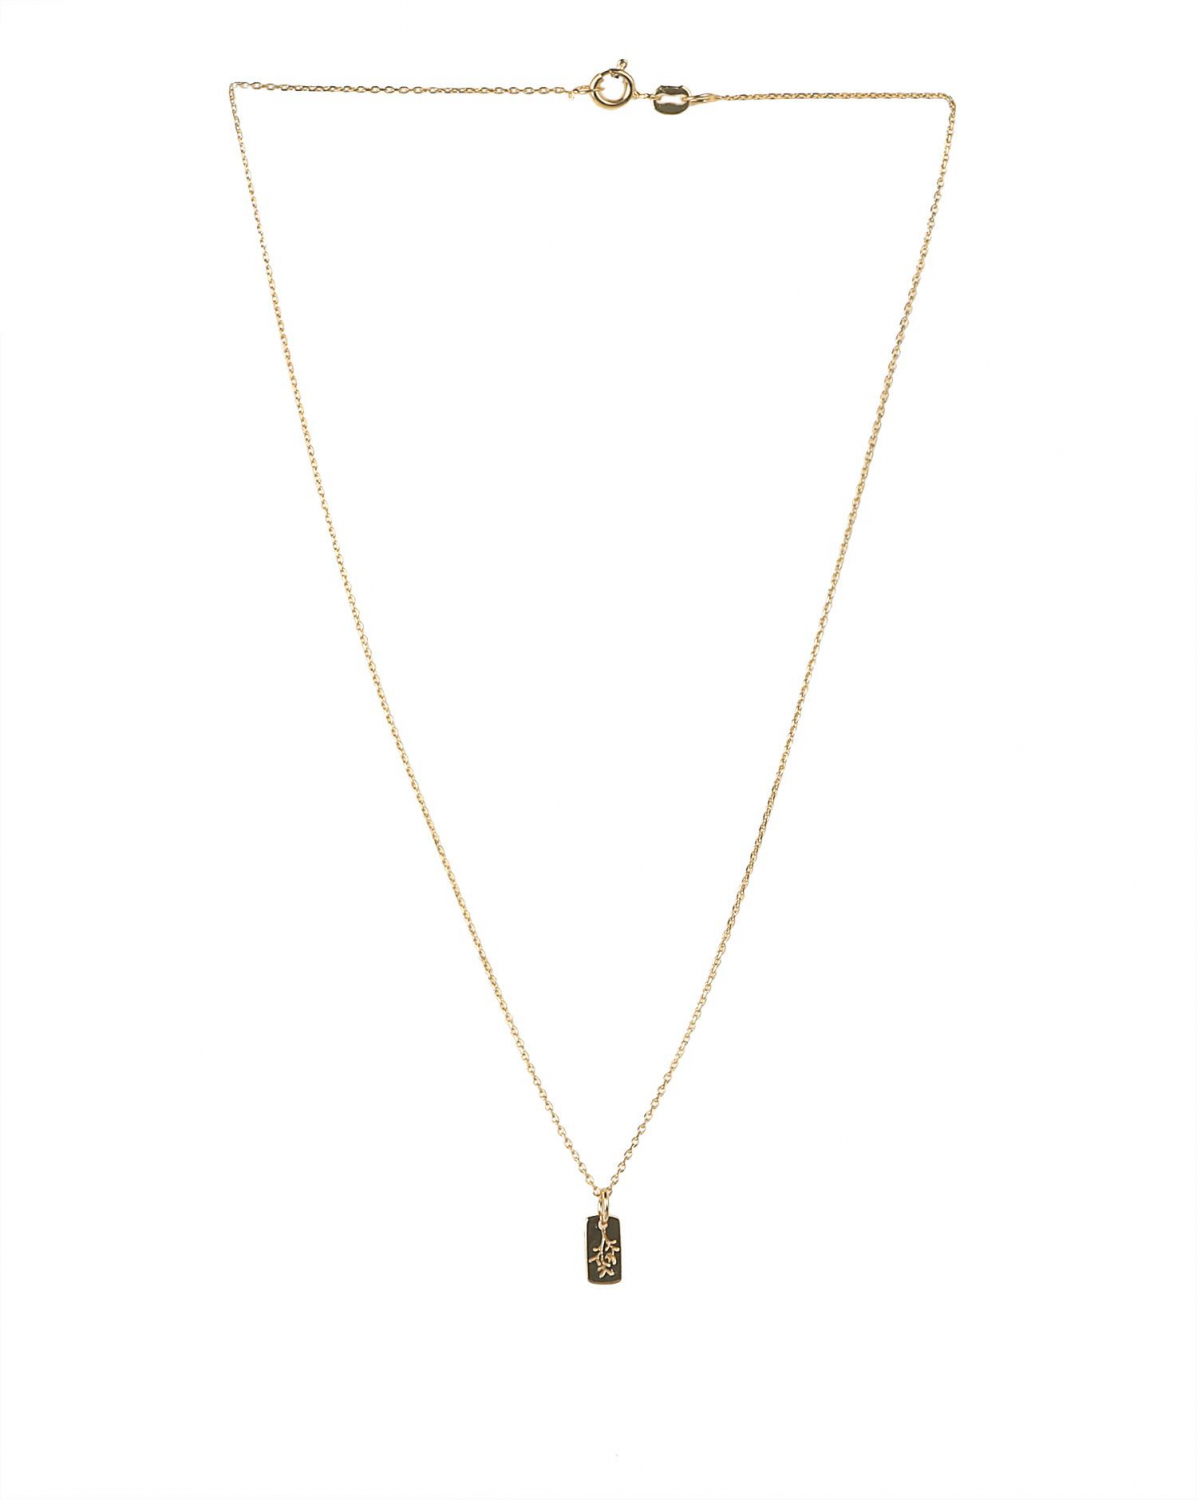 Luj Paris Collier Pendentif Fleurs rectangle